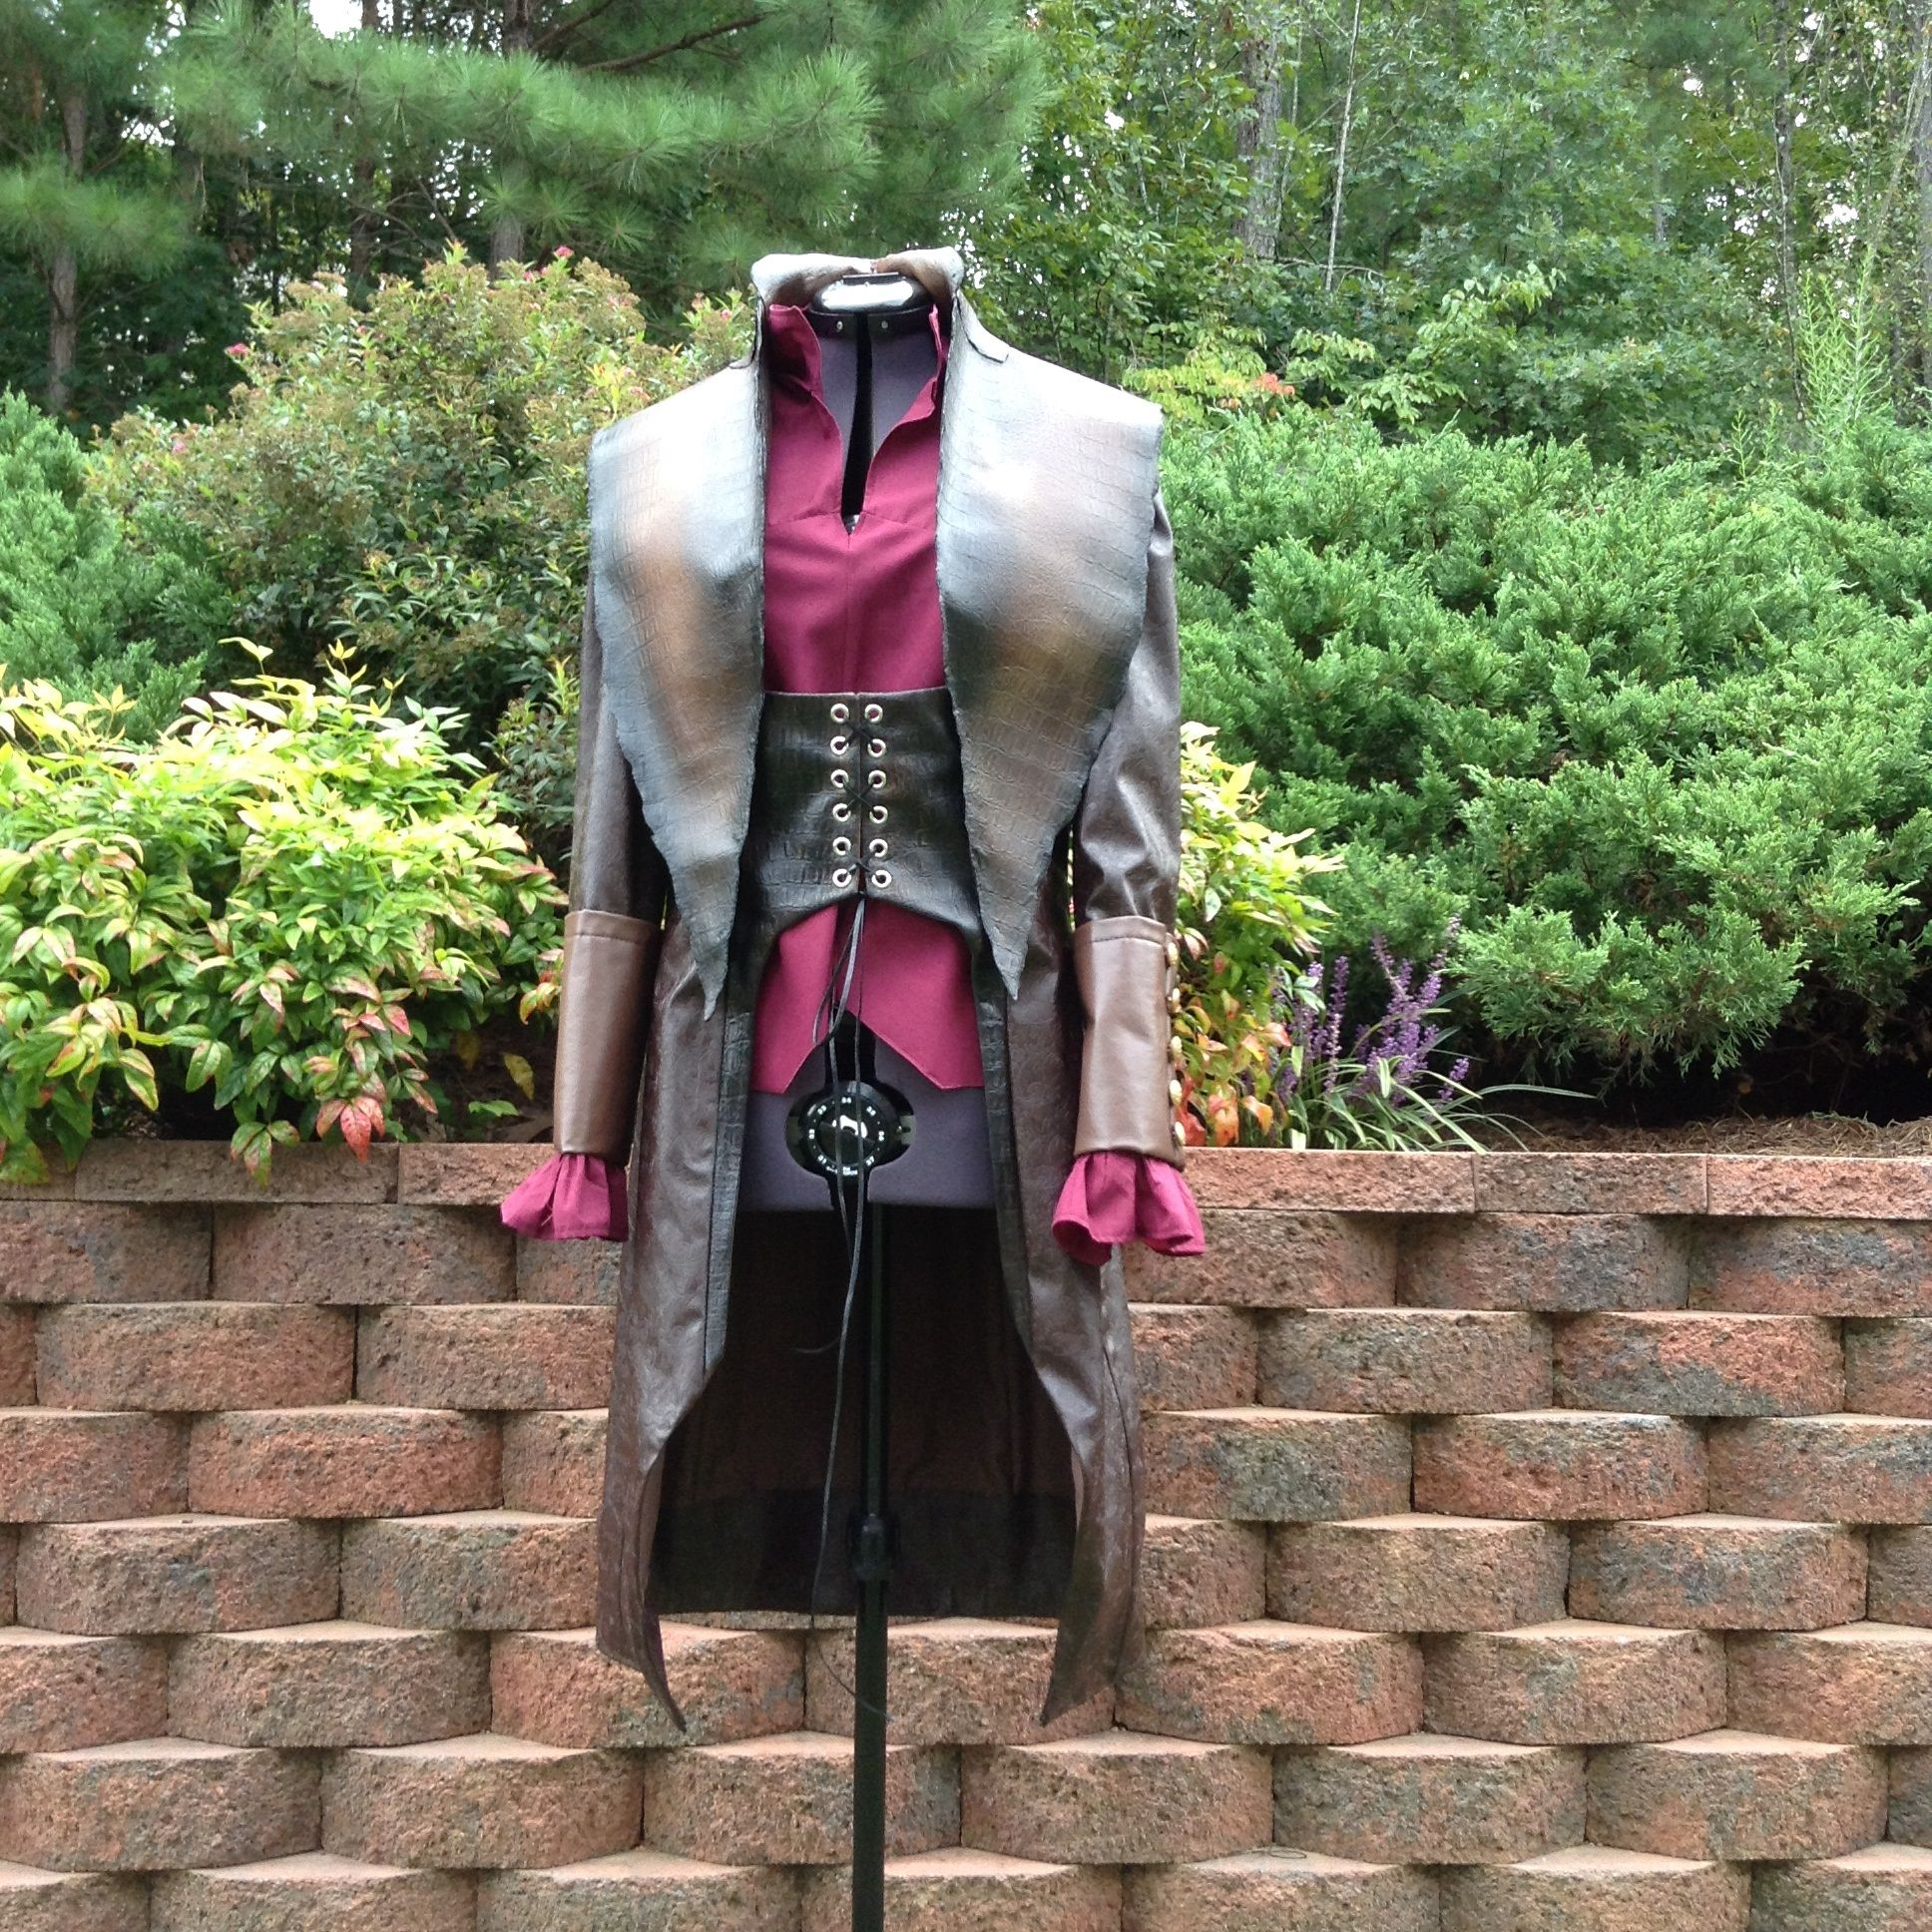 The Man Cave Store Buford : Hand made once upon a time rumplestiltskin costume replica